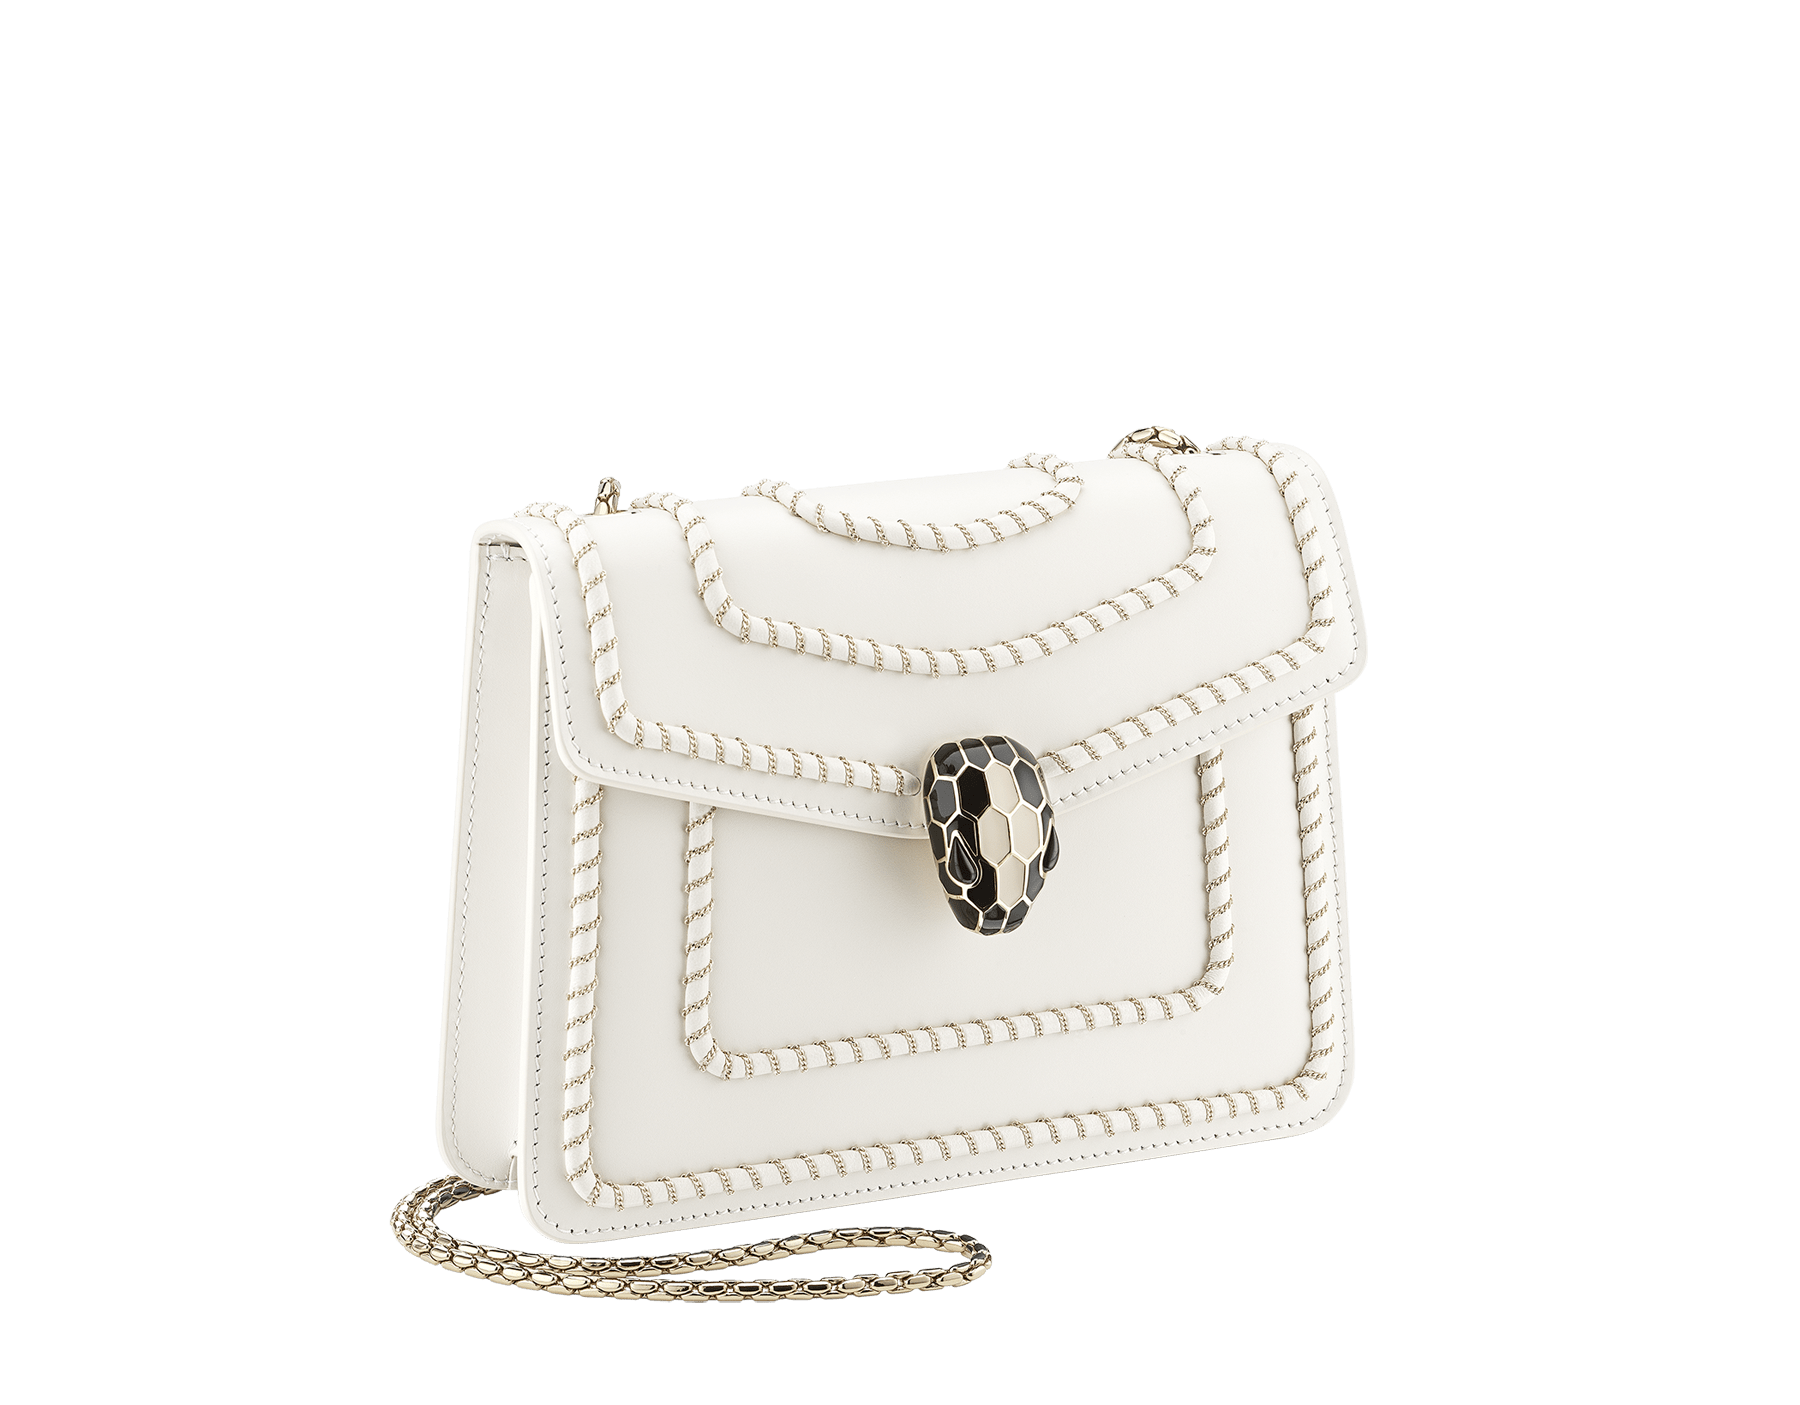 """""""Serpenti Forever"""" crossbody bag in black calf leather, featuring a Woven Chain motif. Iconic snakehead closure in light gold plated brass enriched with shiny black enamel and black onyx eyes 422-WC image 2"""